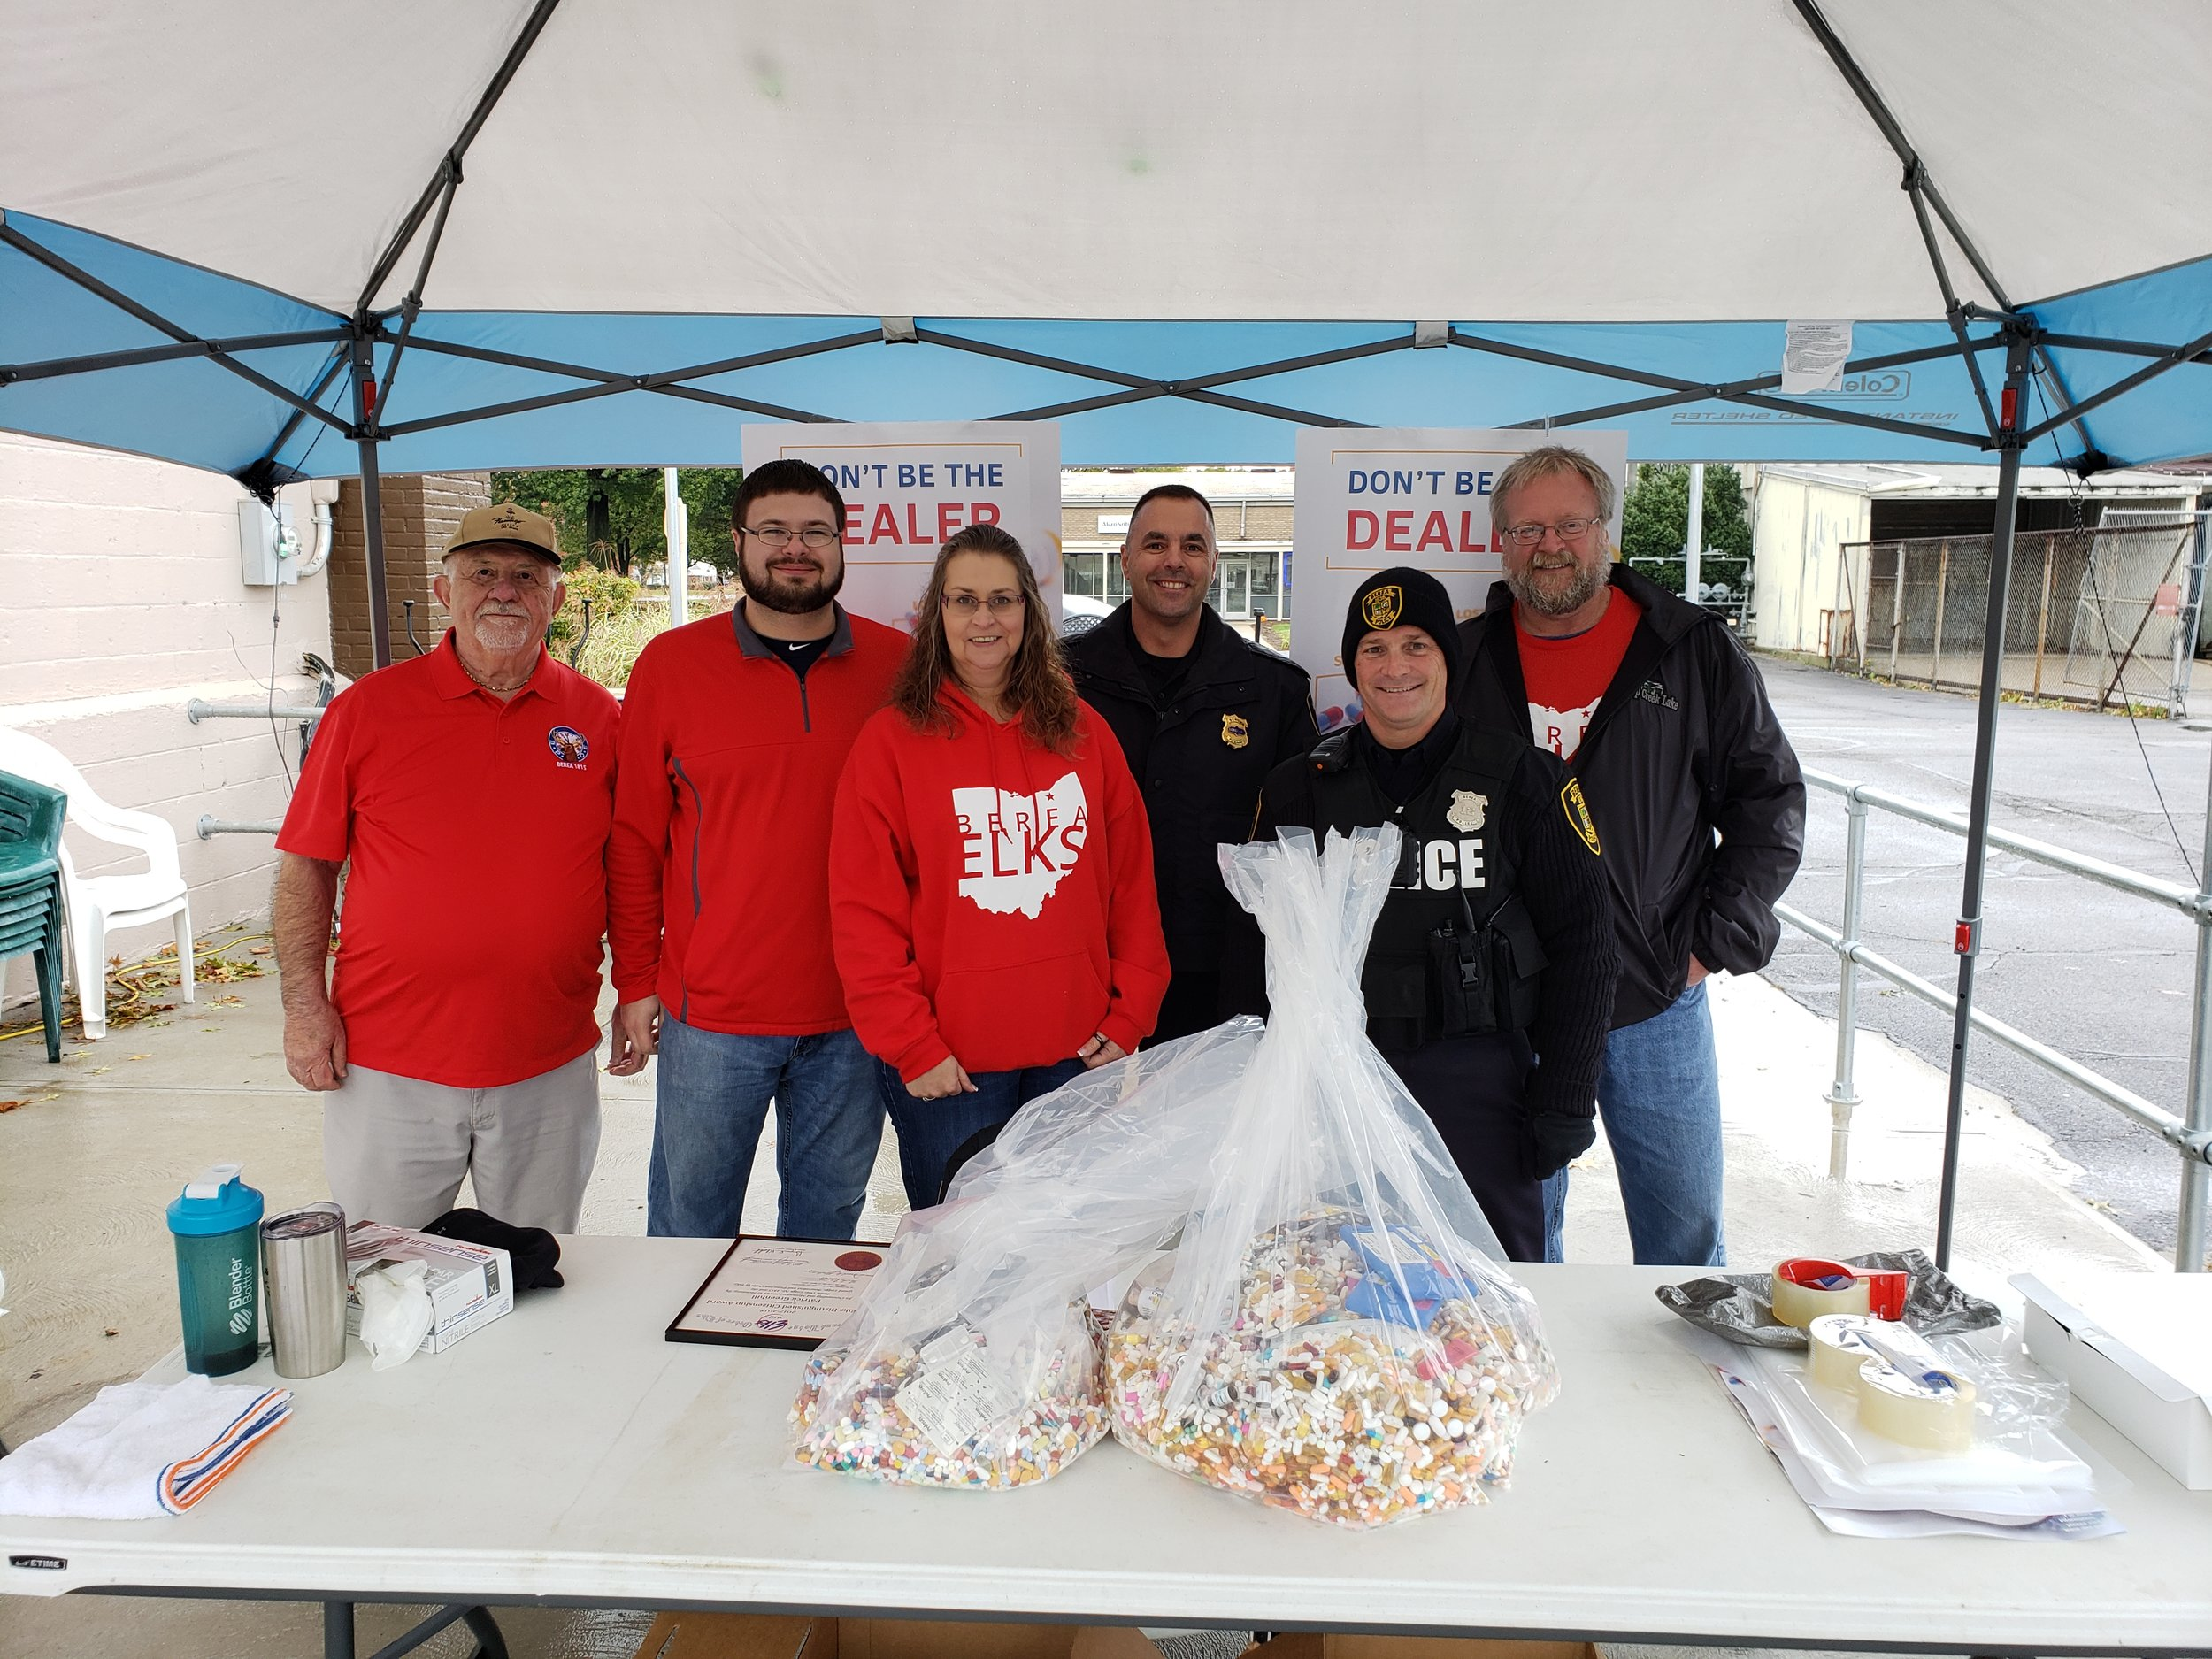 Pictured, from left:  Members Bob Bickford, Jeff Coyle (ER), Danielle Mahany (secretary), Officers Pat Greenhill and Chuck Gute of Berea Police, and member John Masterson.